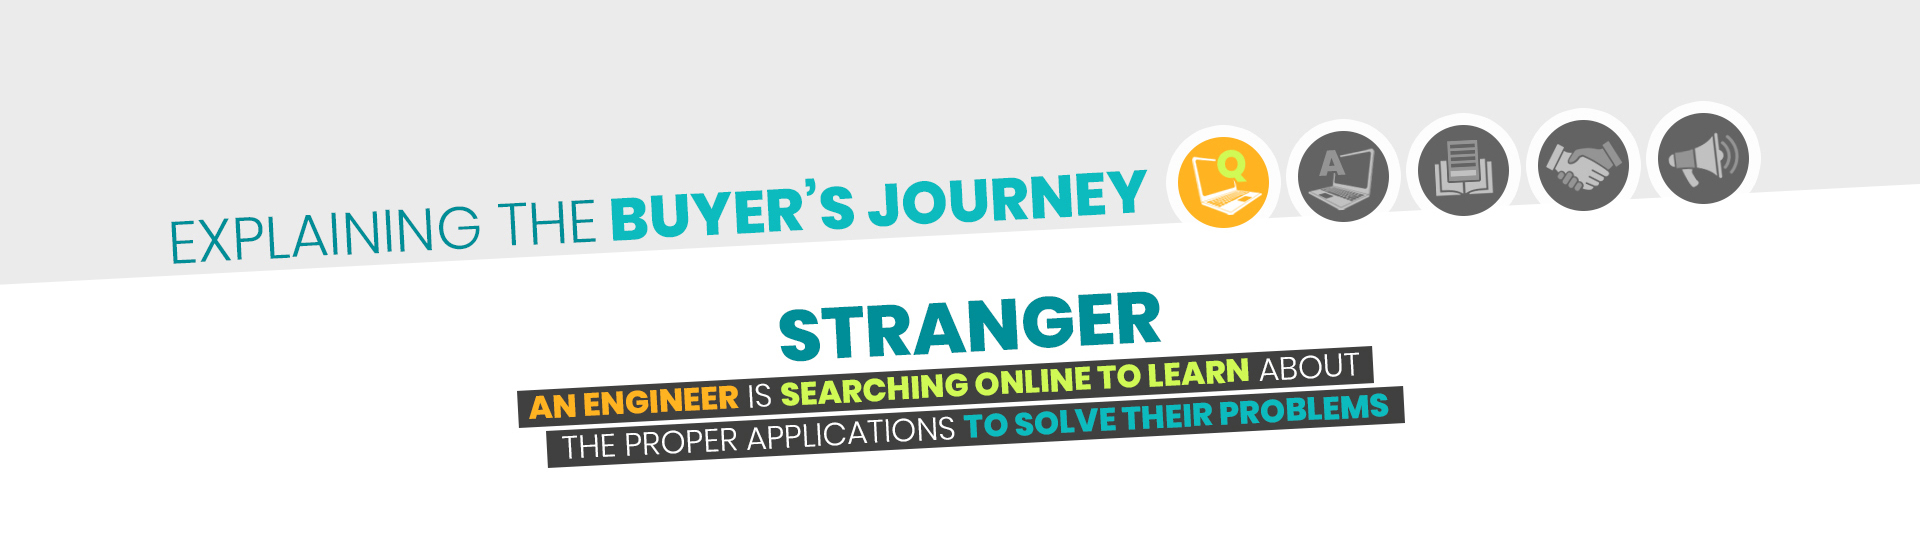 Buyers Journey - Stranger-1